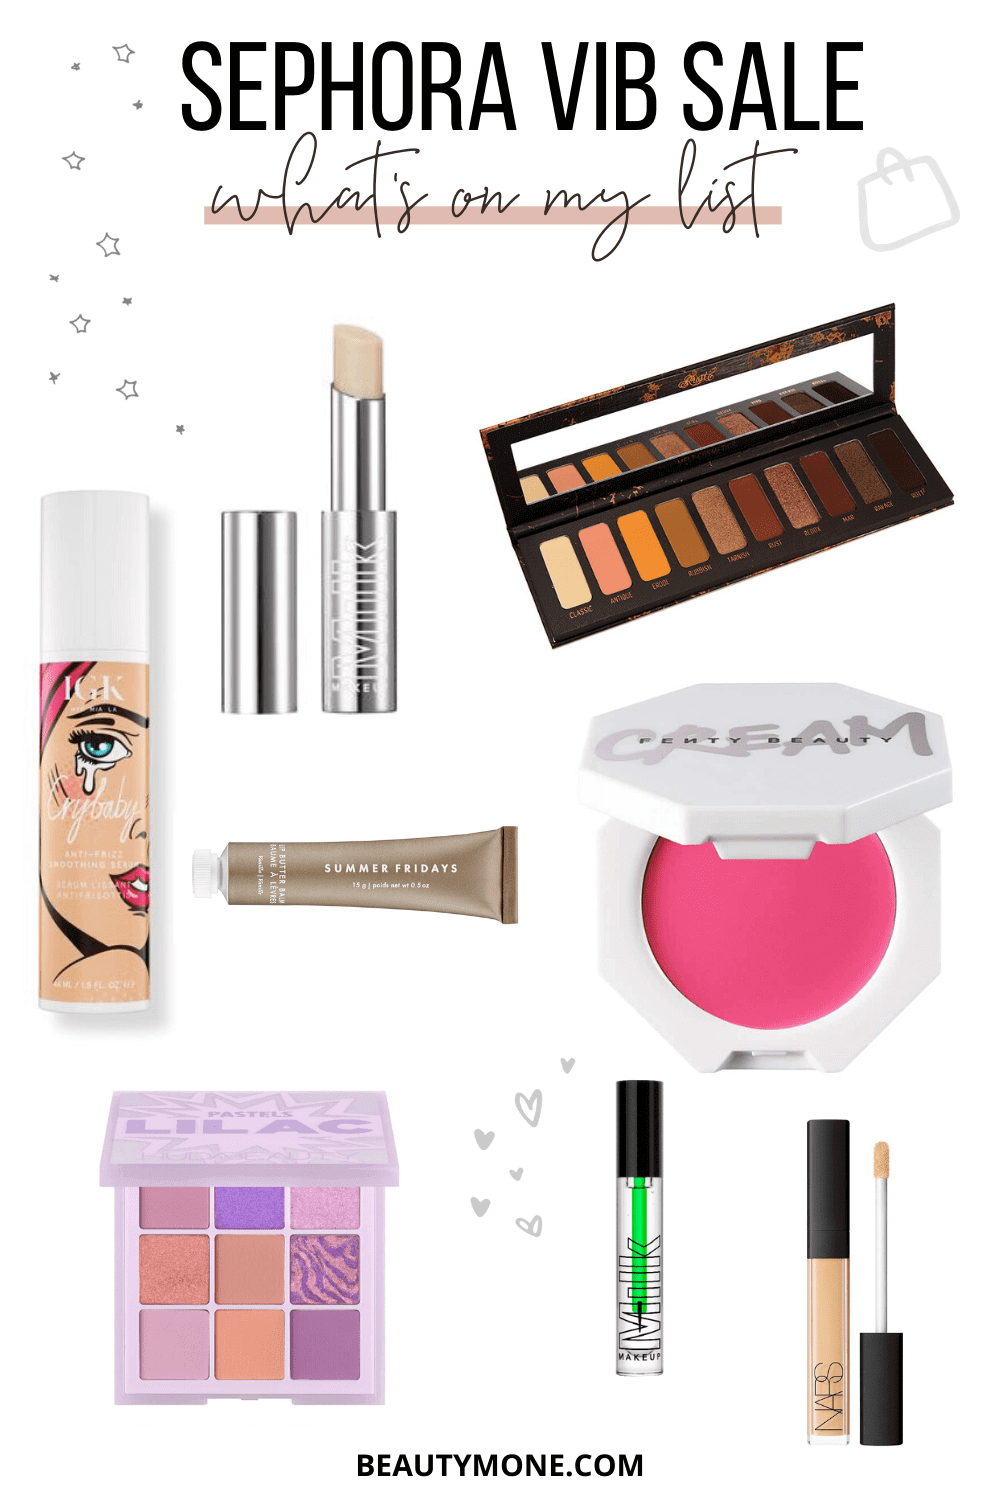 20 Sephora VIB Sale Recommendations - what's on my list